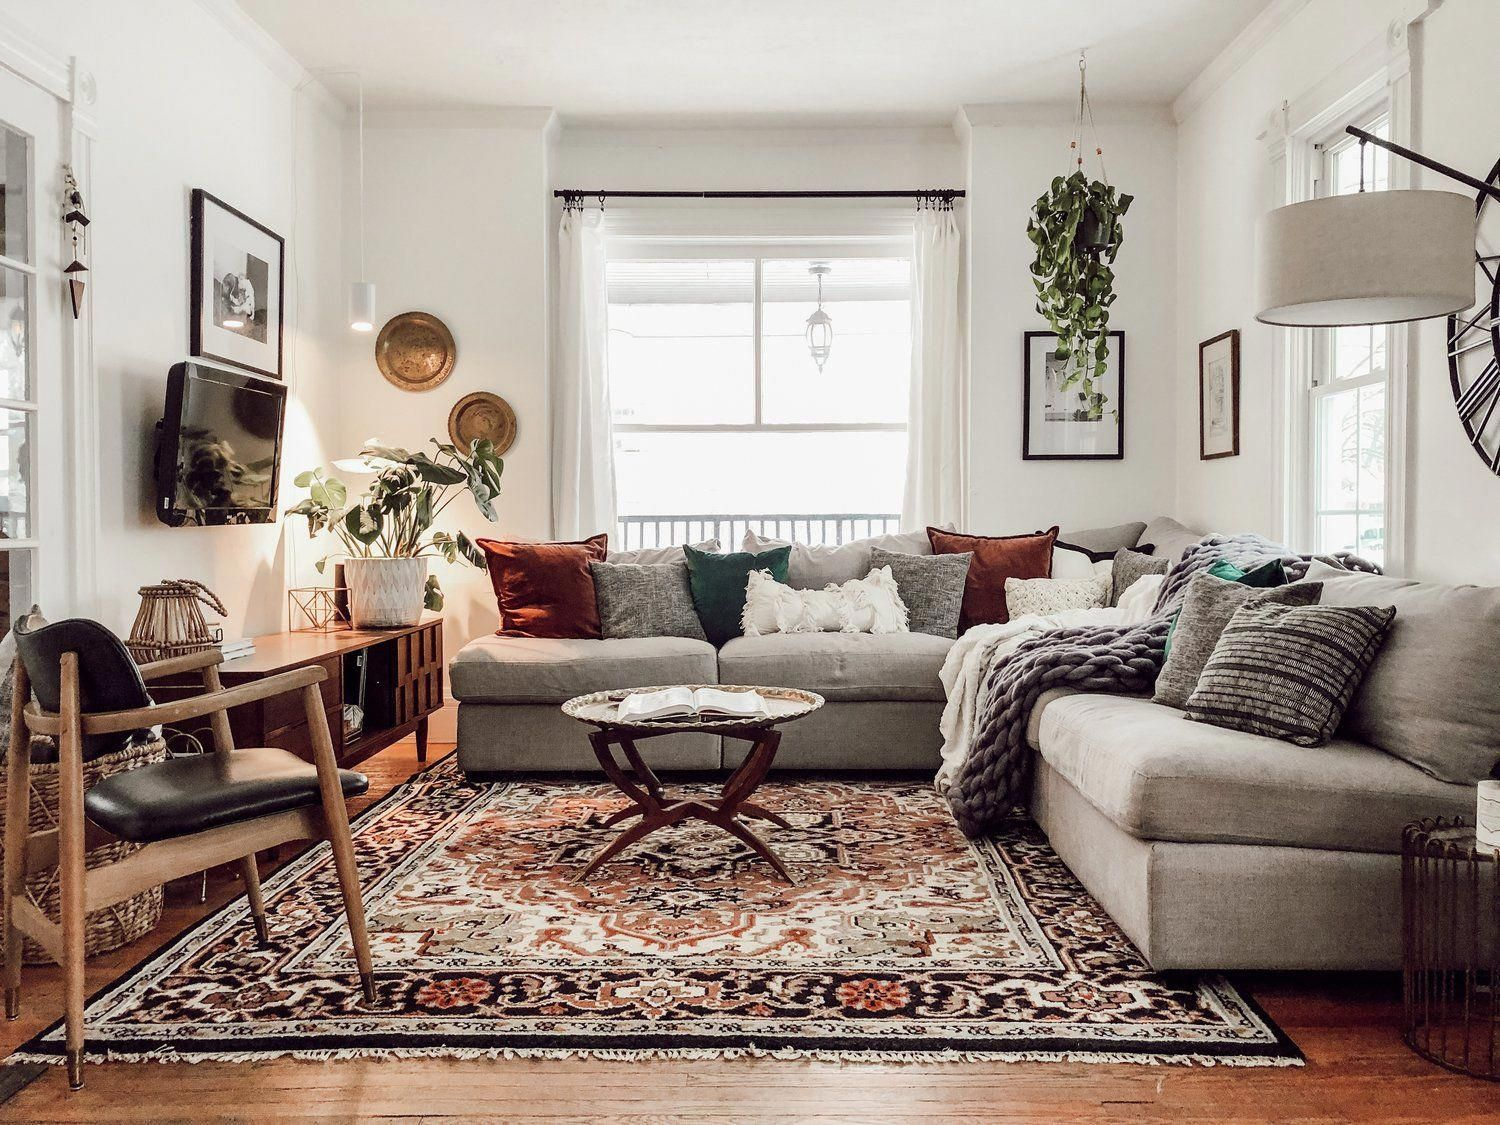 Boho Modern Living Room Miranda Schroeder House Tour Livingroomdecor Modern Boho Living Room Cozy Home Decorating Boho Living Room #neutral #bohemian #living #room